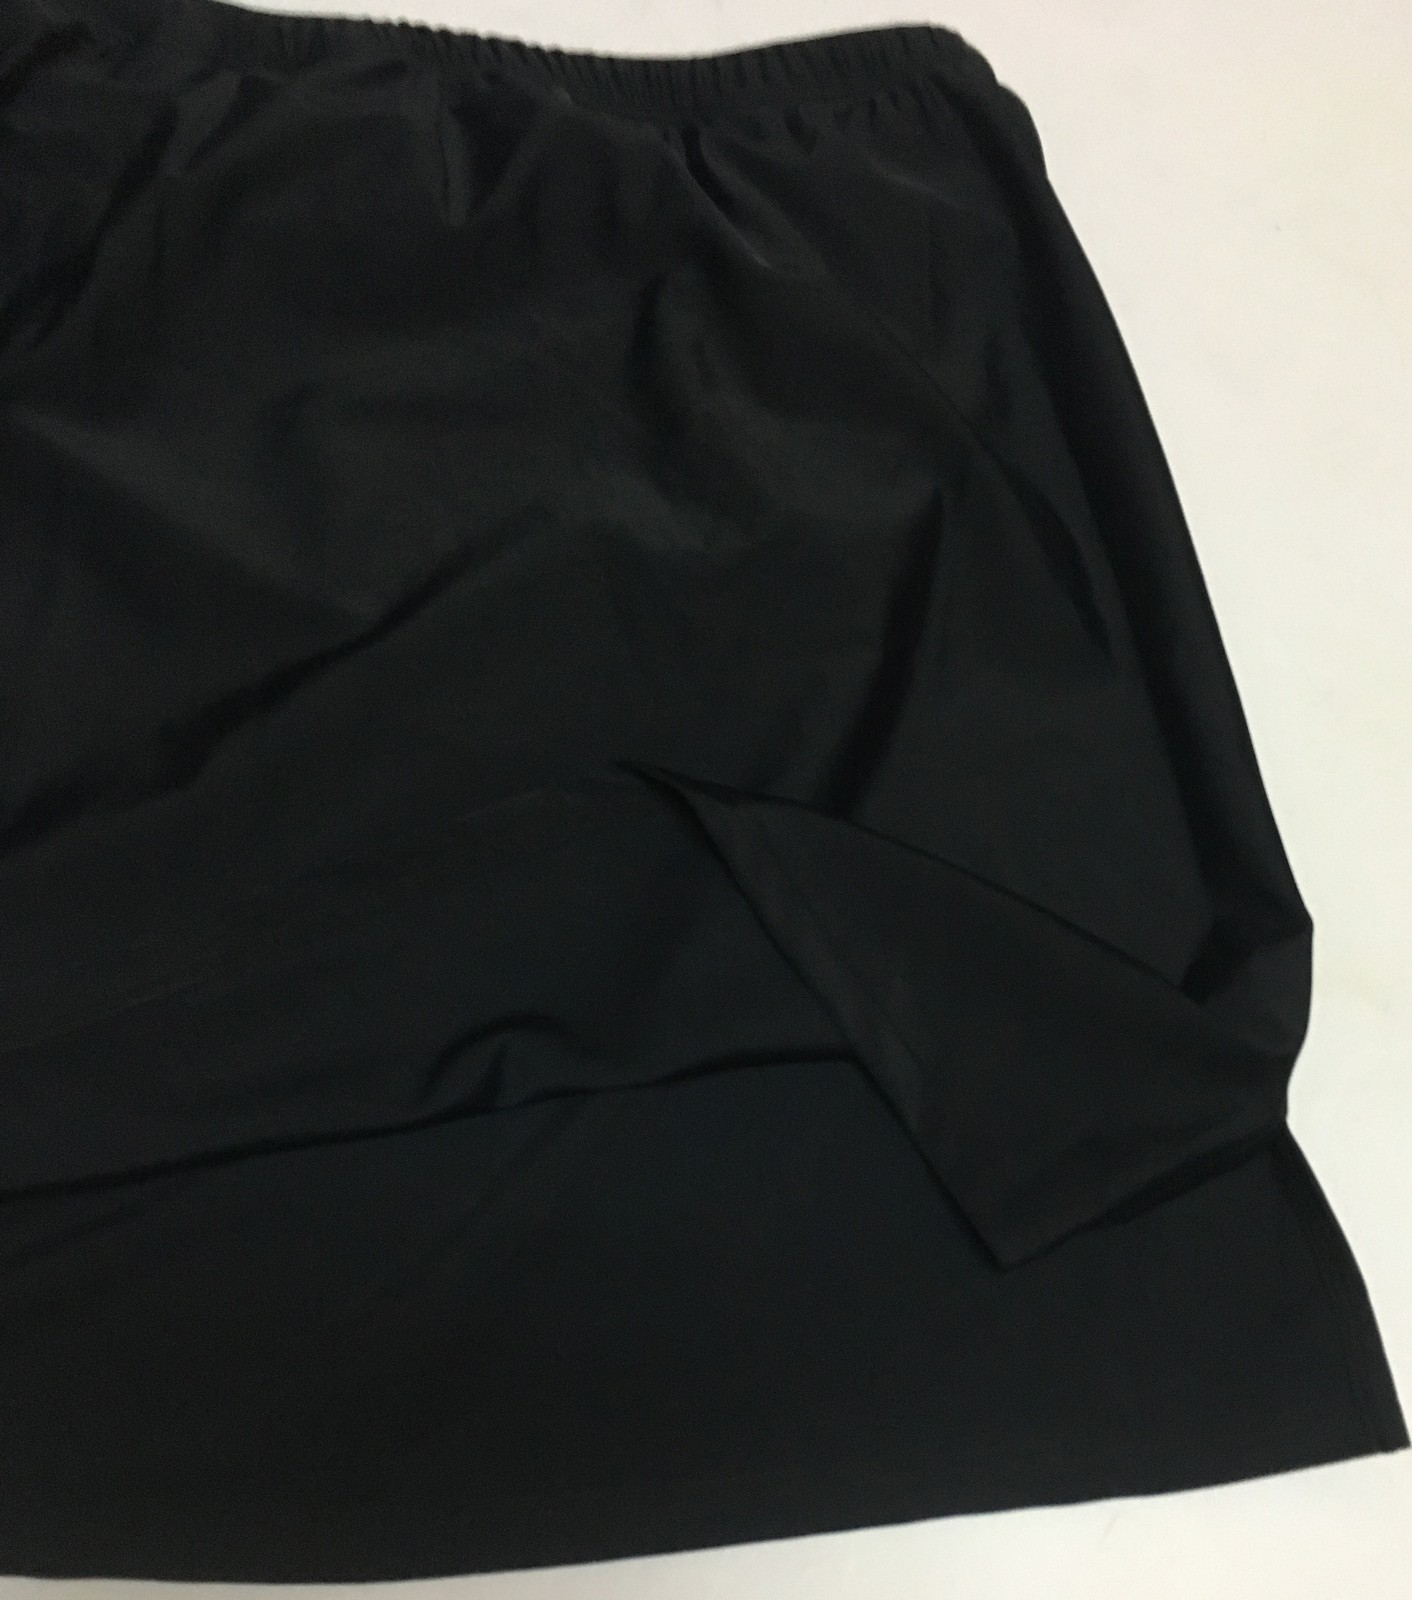 Croft & Barrow Activity Swimwear Skirt 18W Black image 5